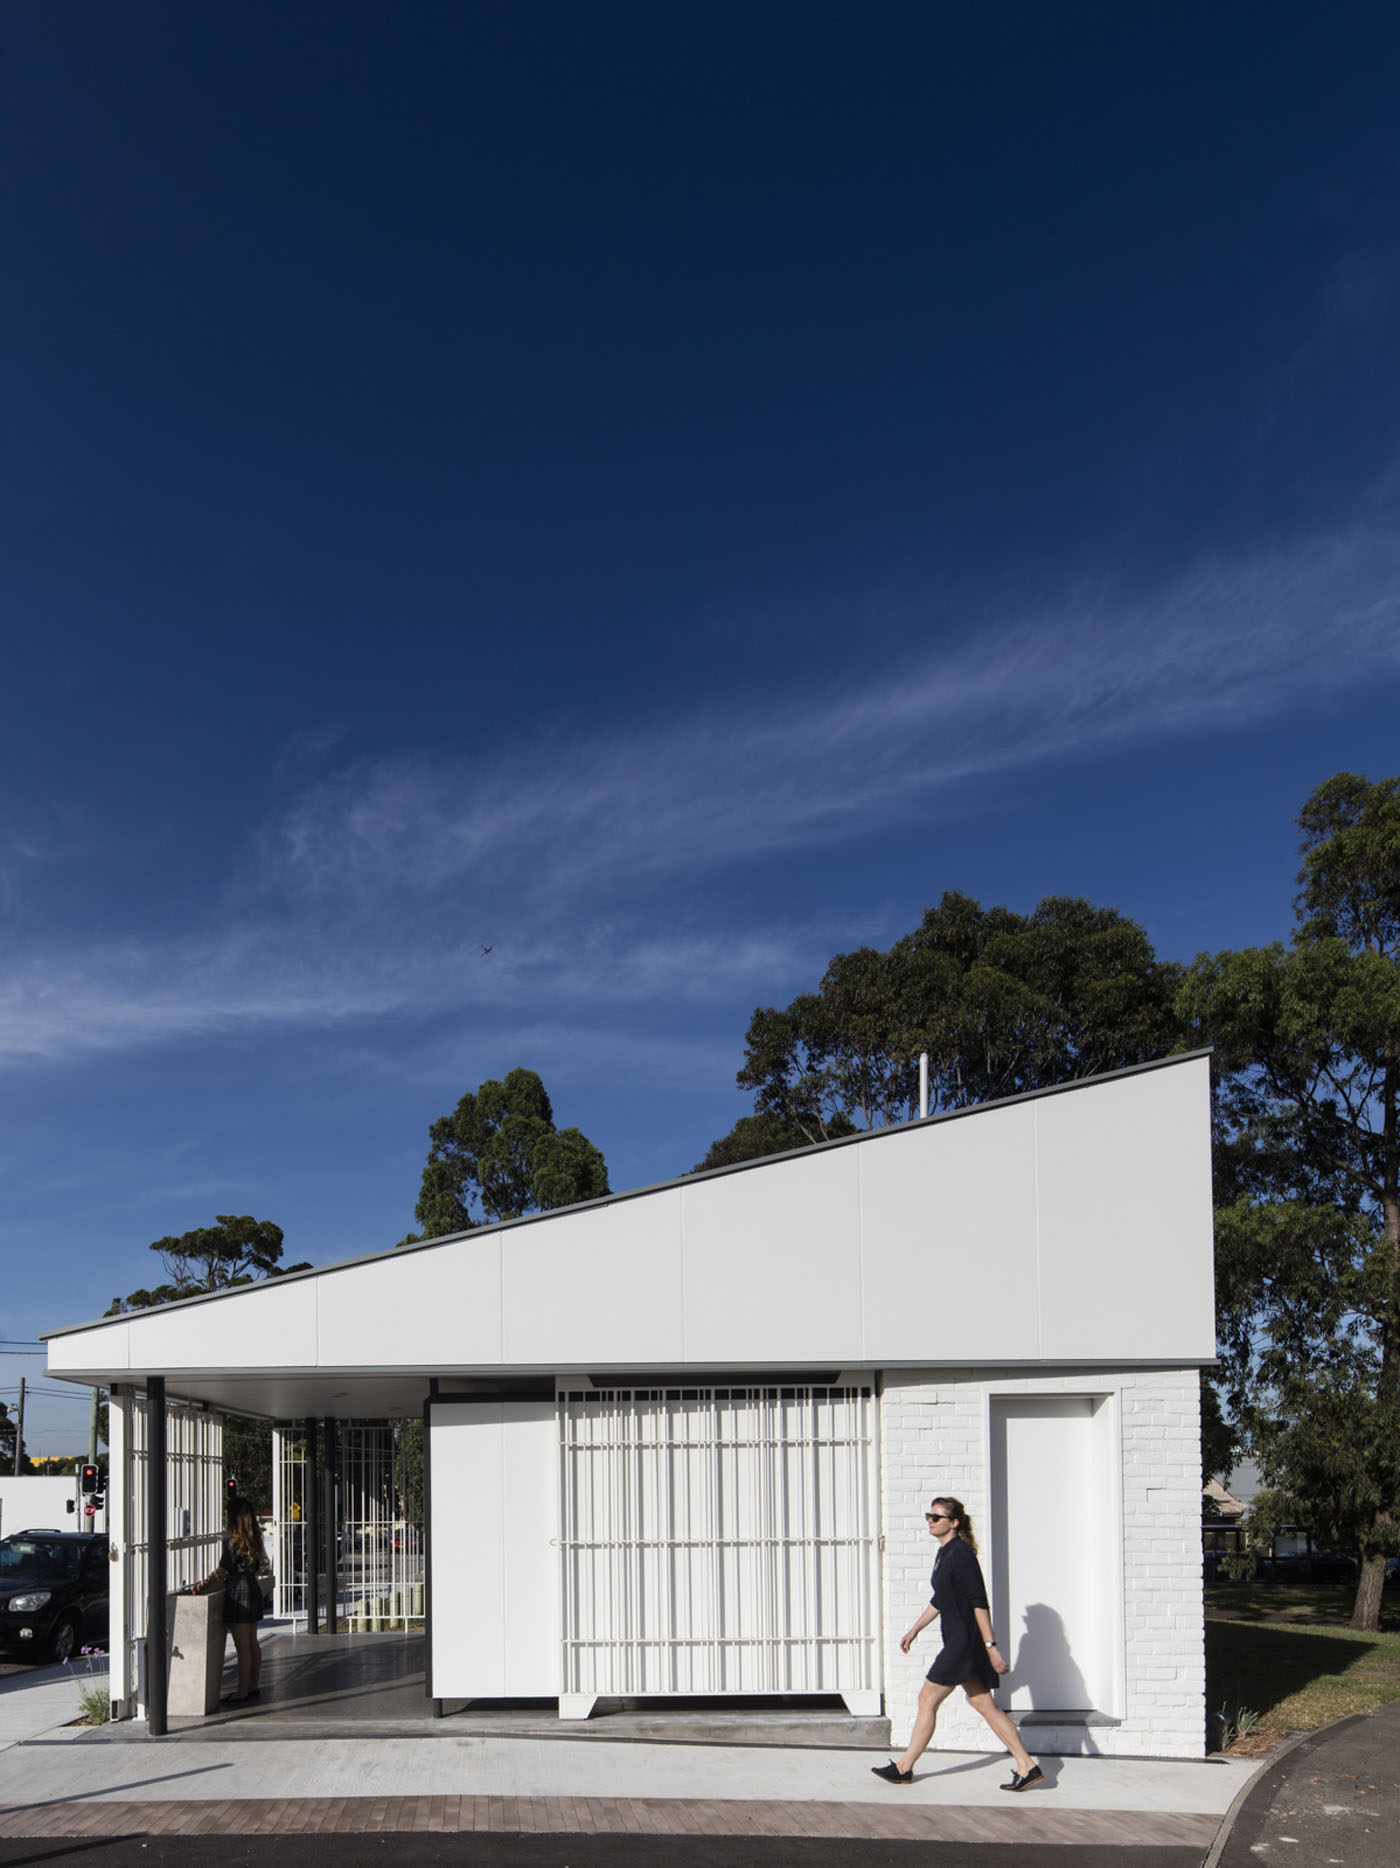 Sydenham Green Amenities by Sam Crawford Architects, Sydney. Angular form reference planes flying overhead.